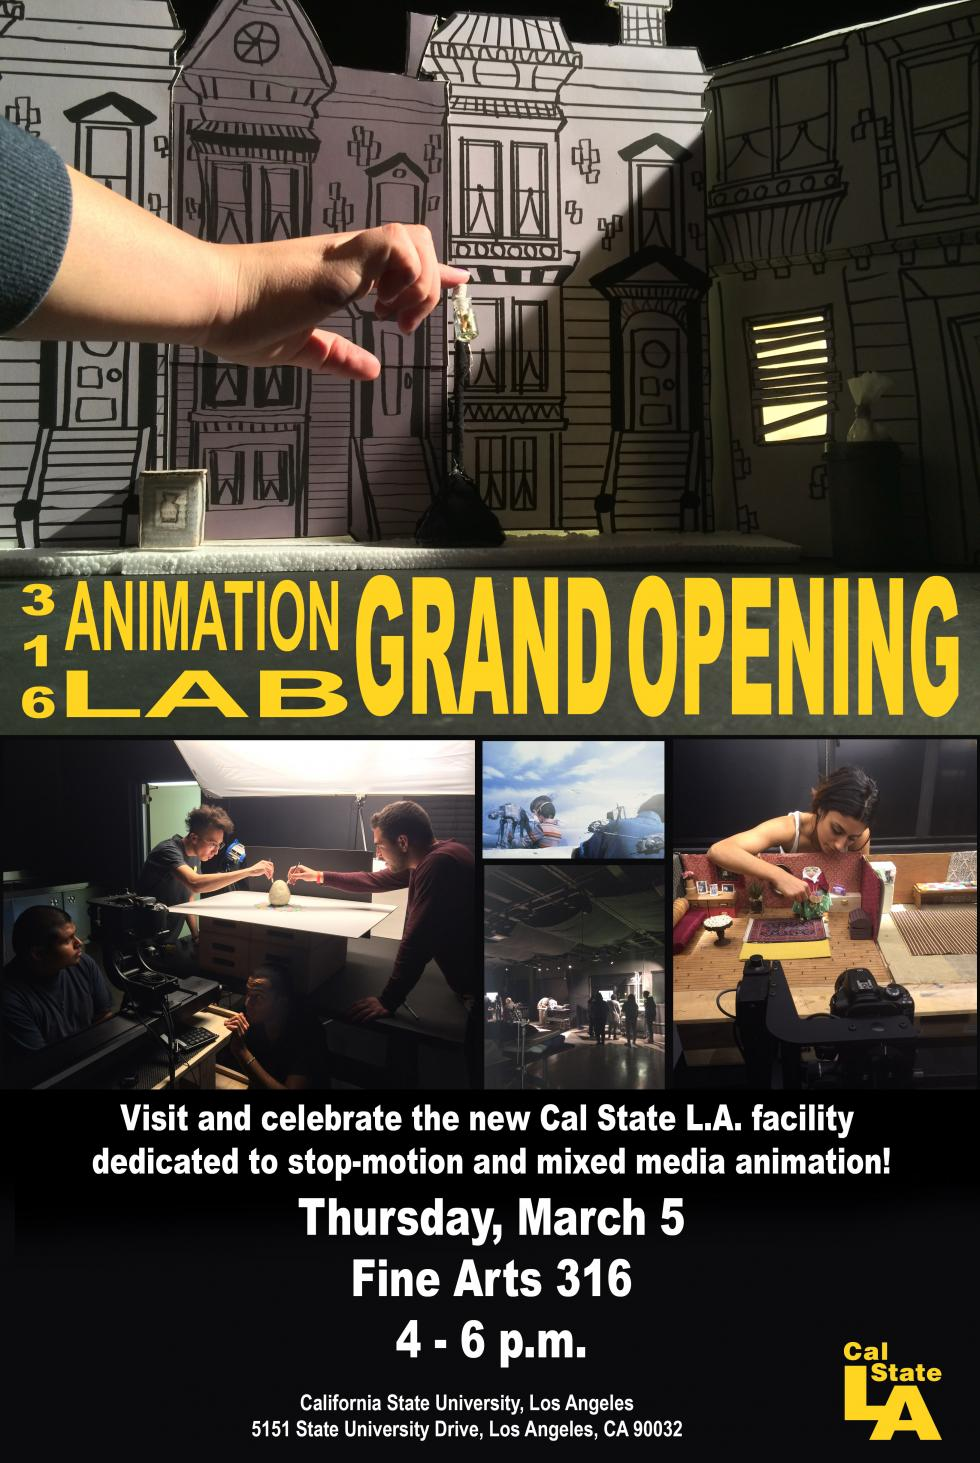 Animation Stop-motion Lab Opening Poster